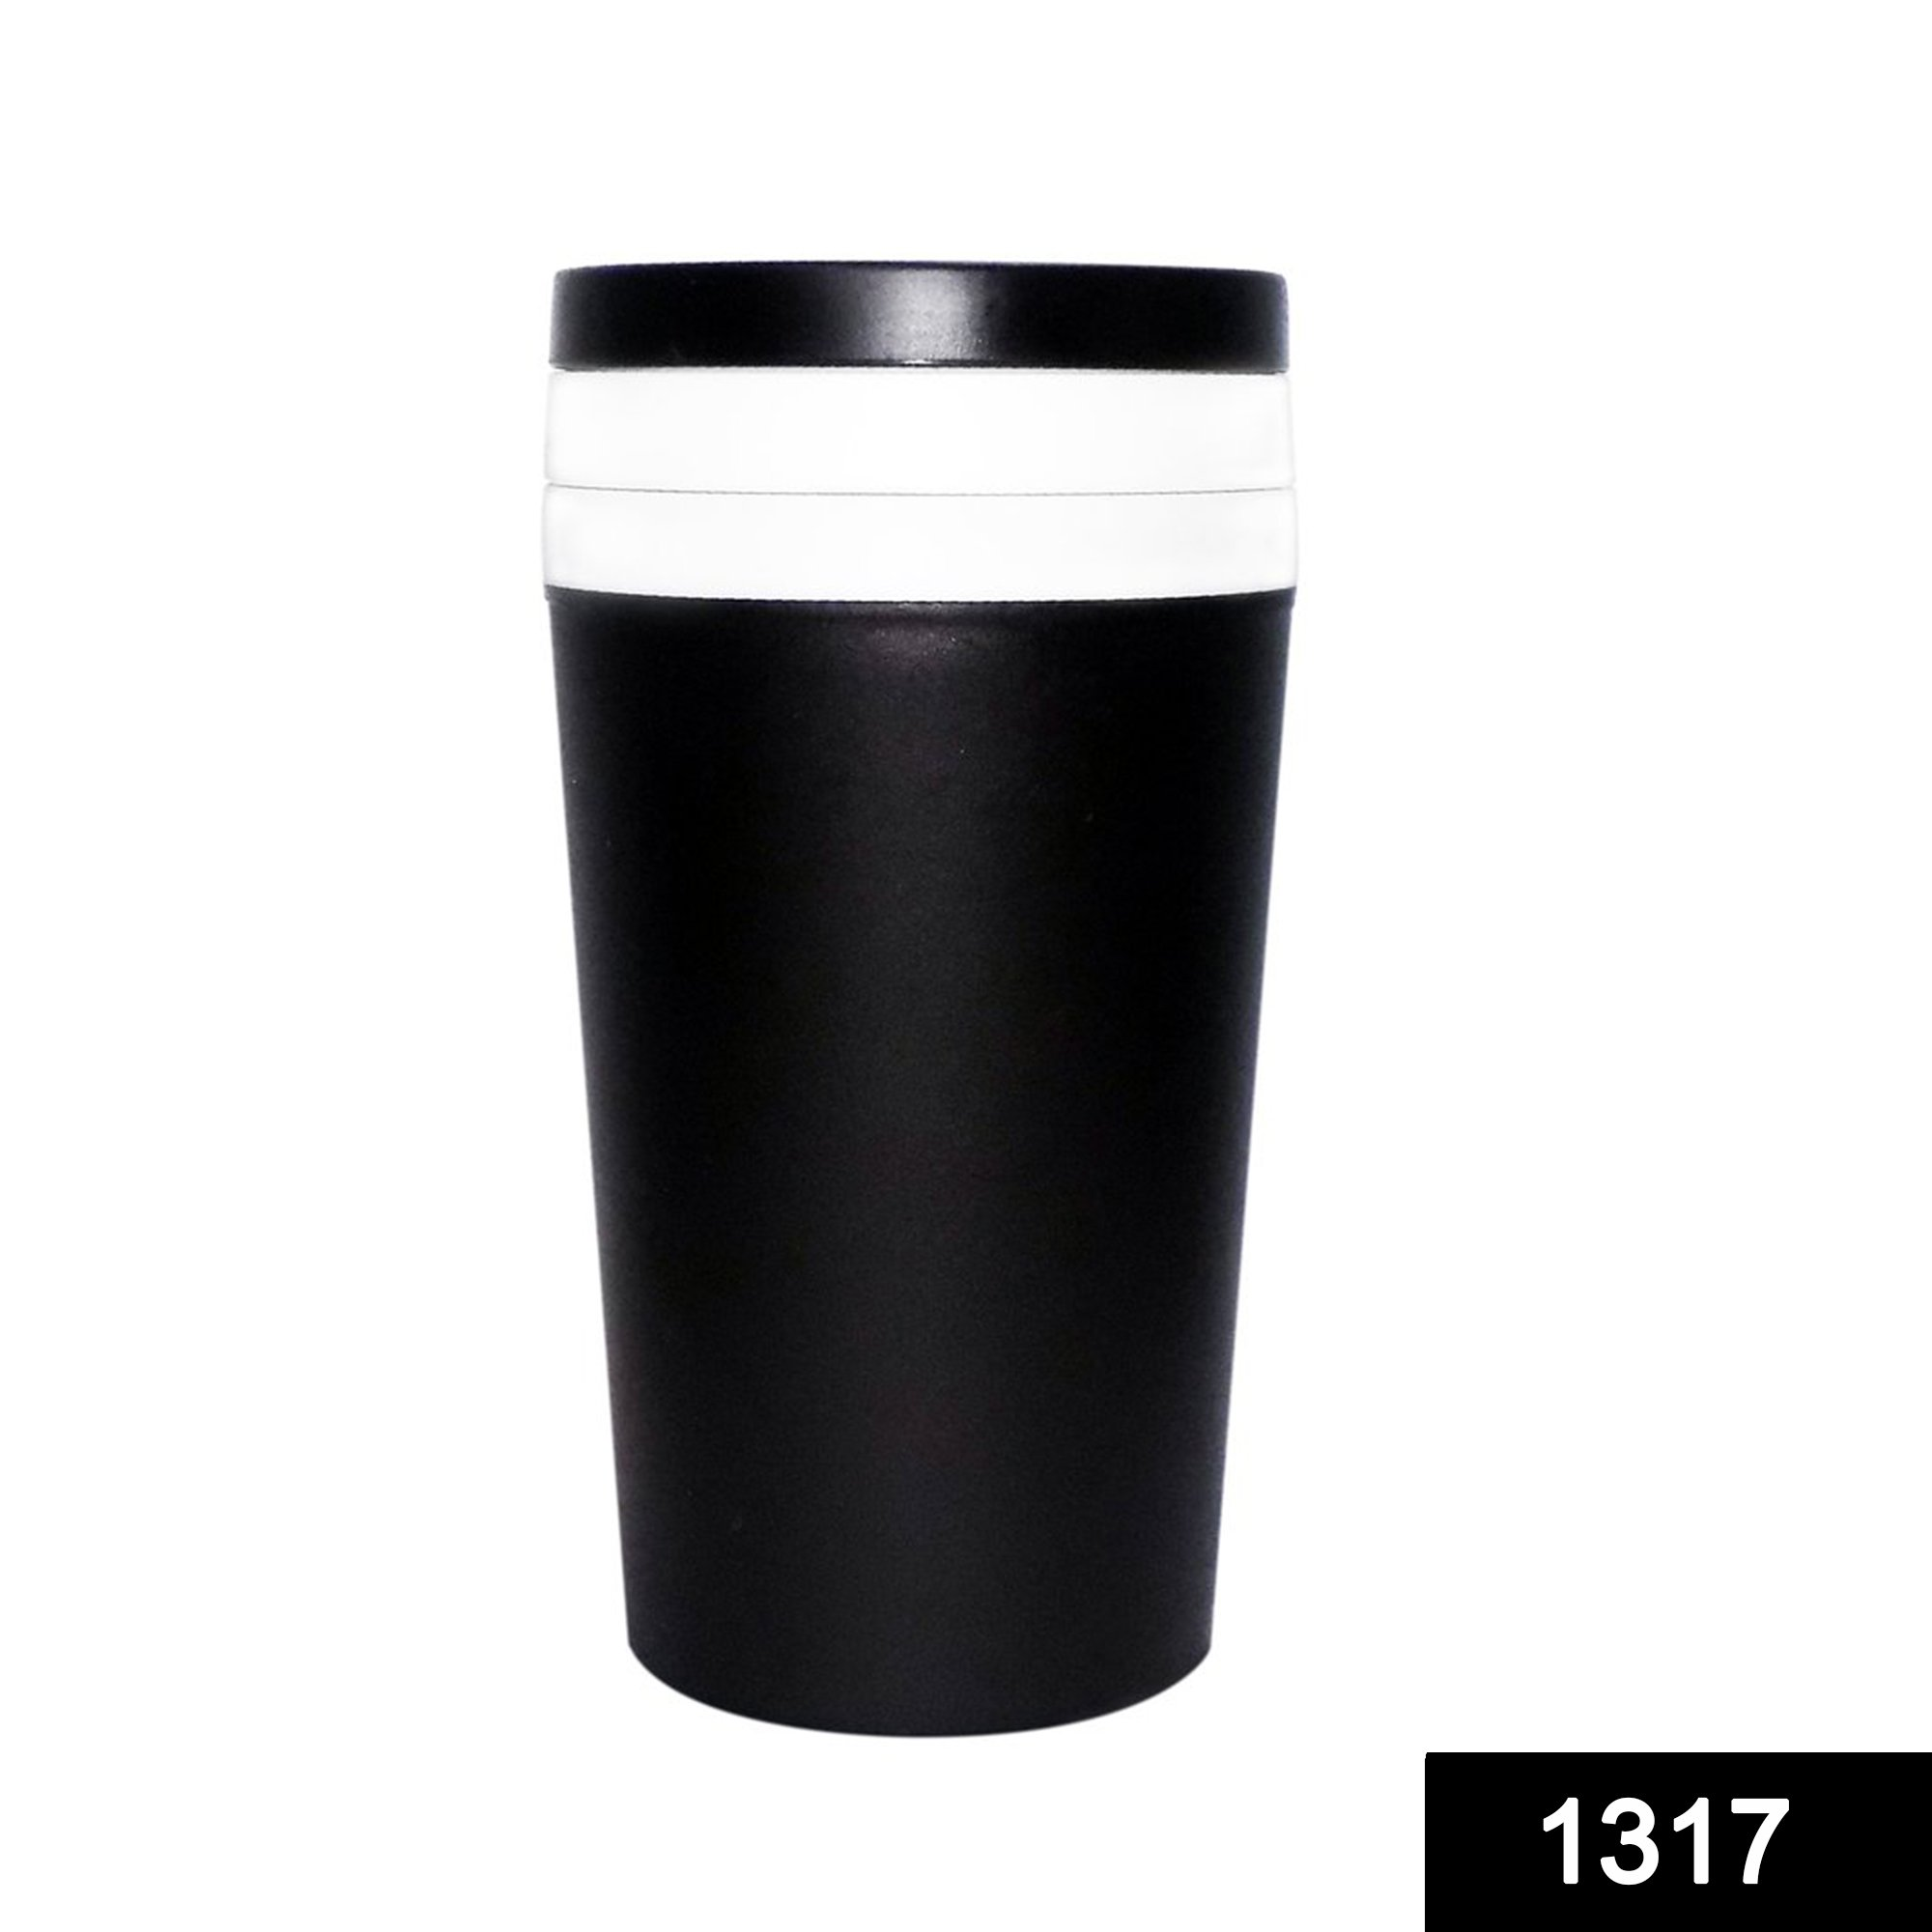 1317 3 in 1 Shaker Sipper Glass with Detachable Storage Container (300Ml) -